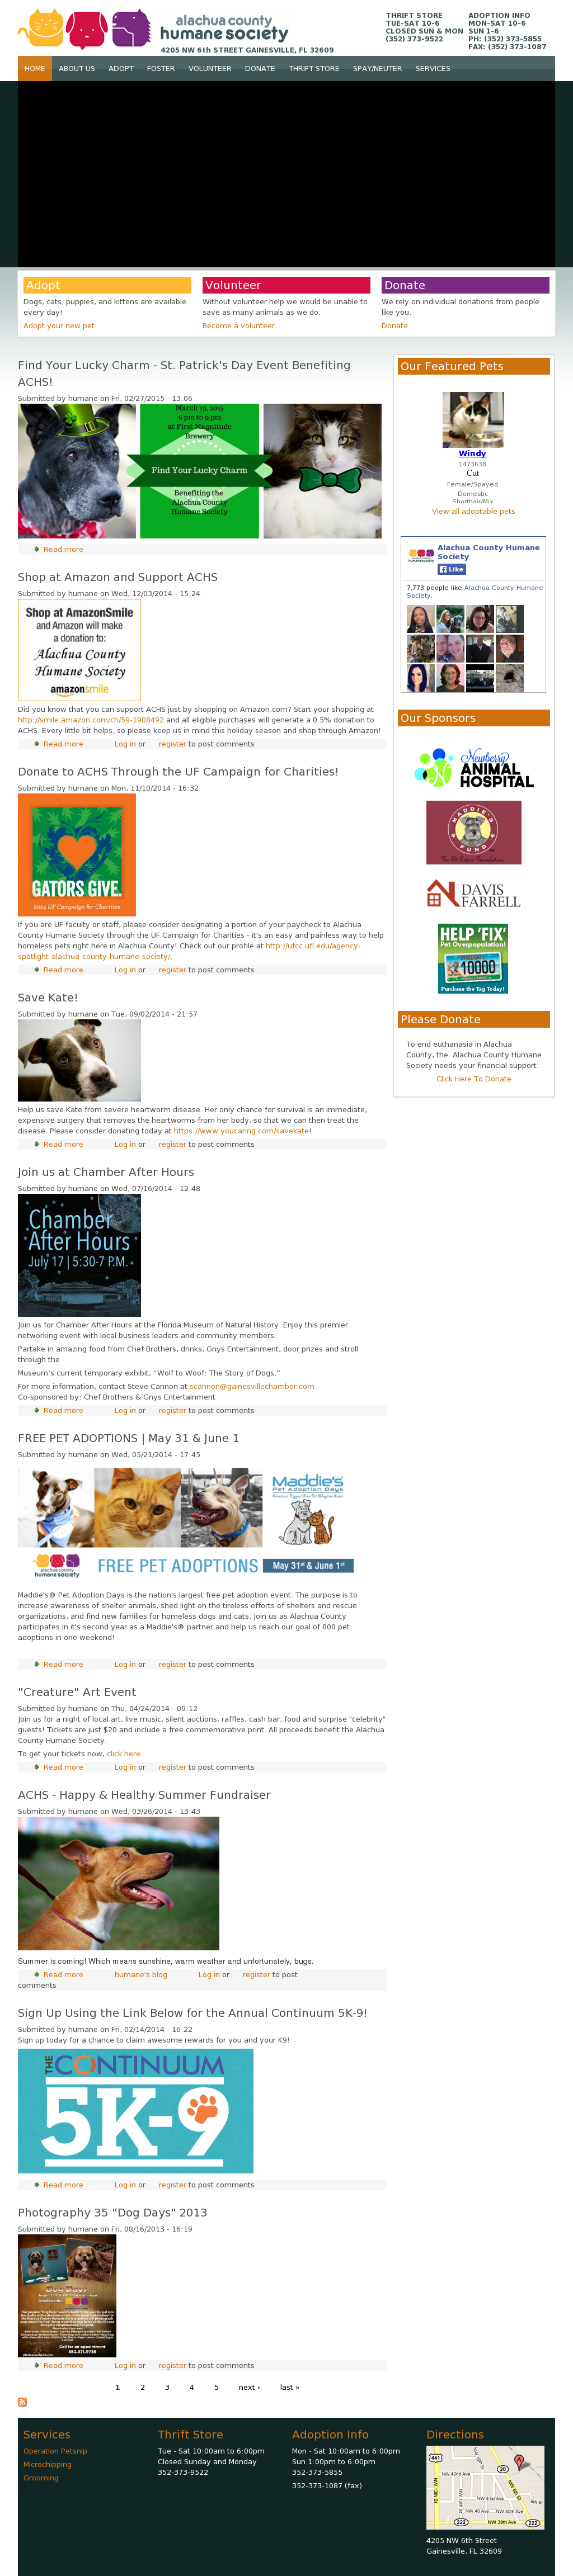 Alachua County Humane Society Competitors, Revenue and